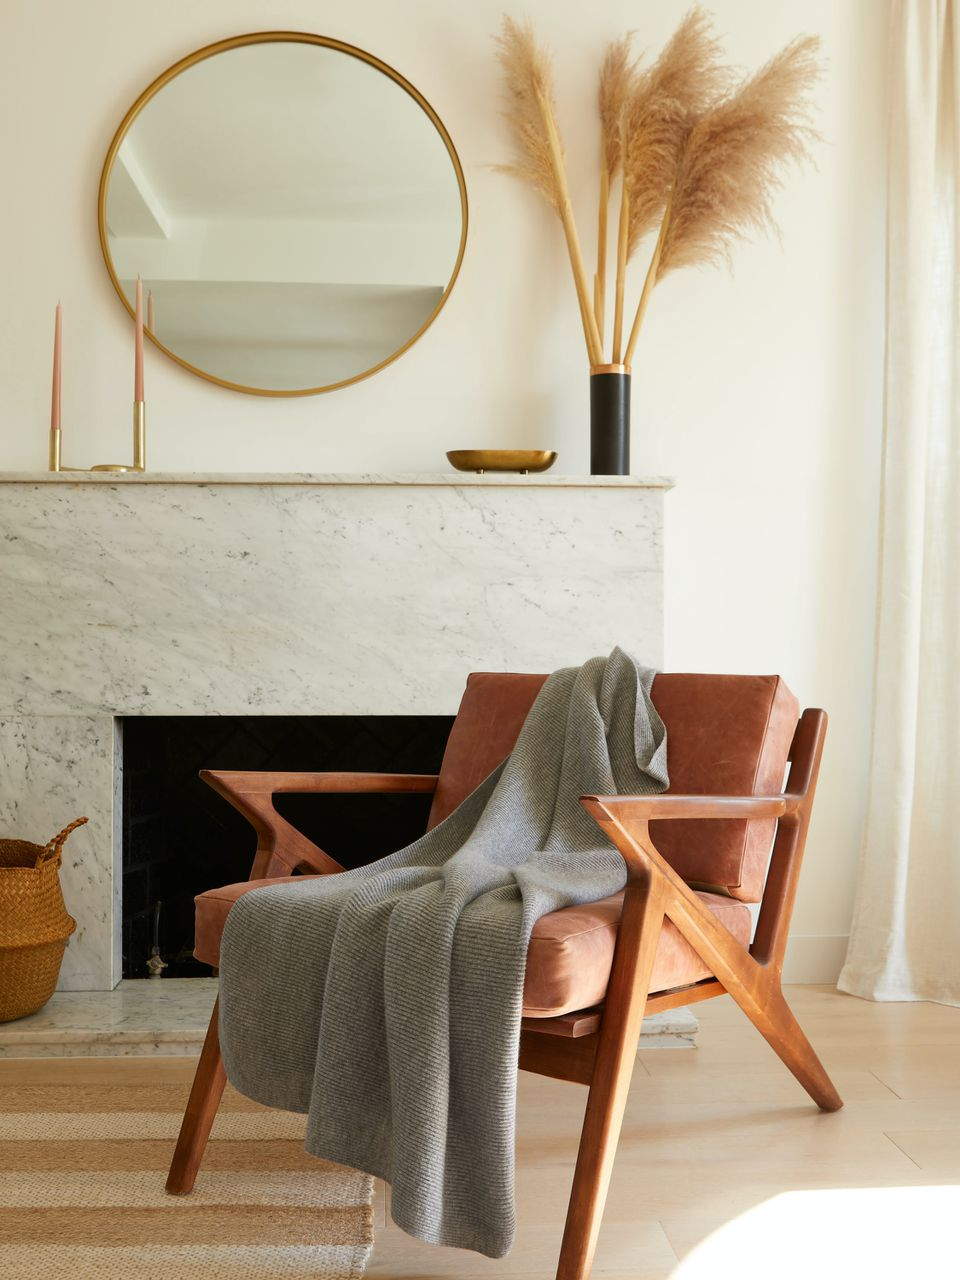 round mirror above a marble fireplace with a earthy color chair